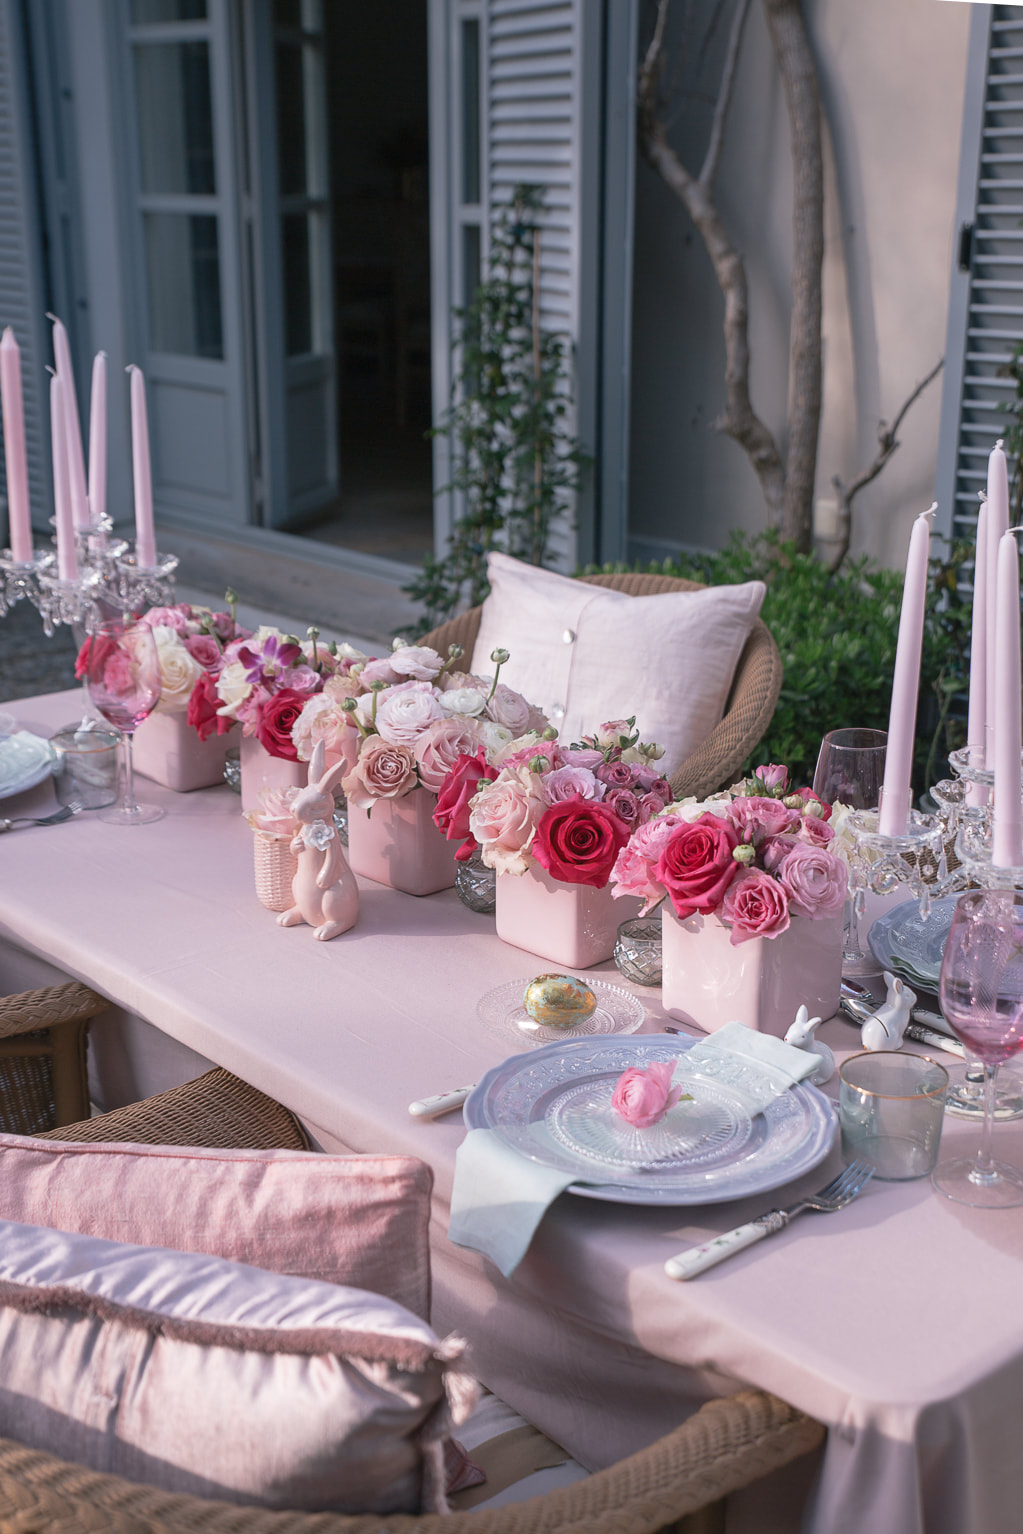 Easter entertaining and tablescape Inspiration by The Belle Blog